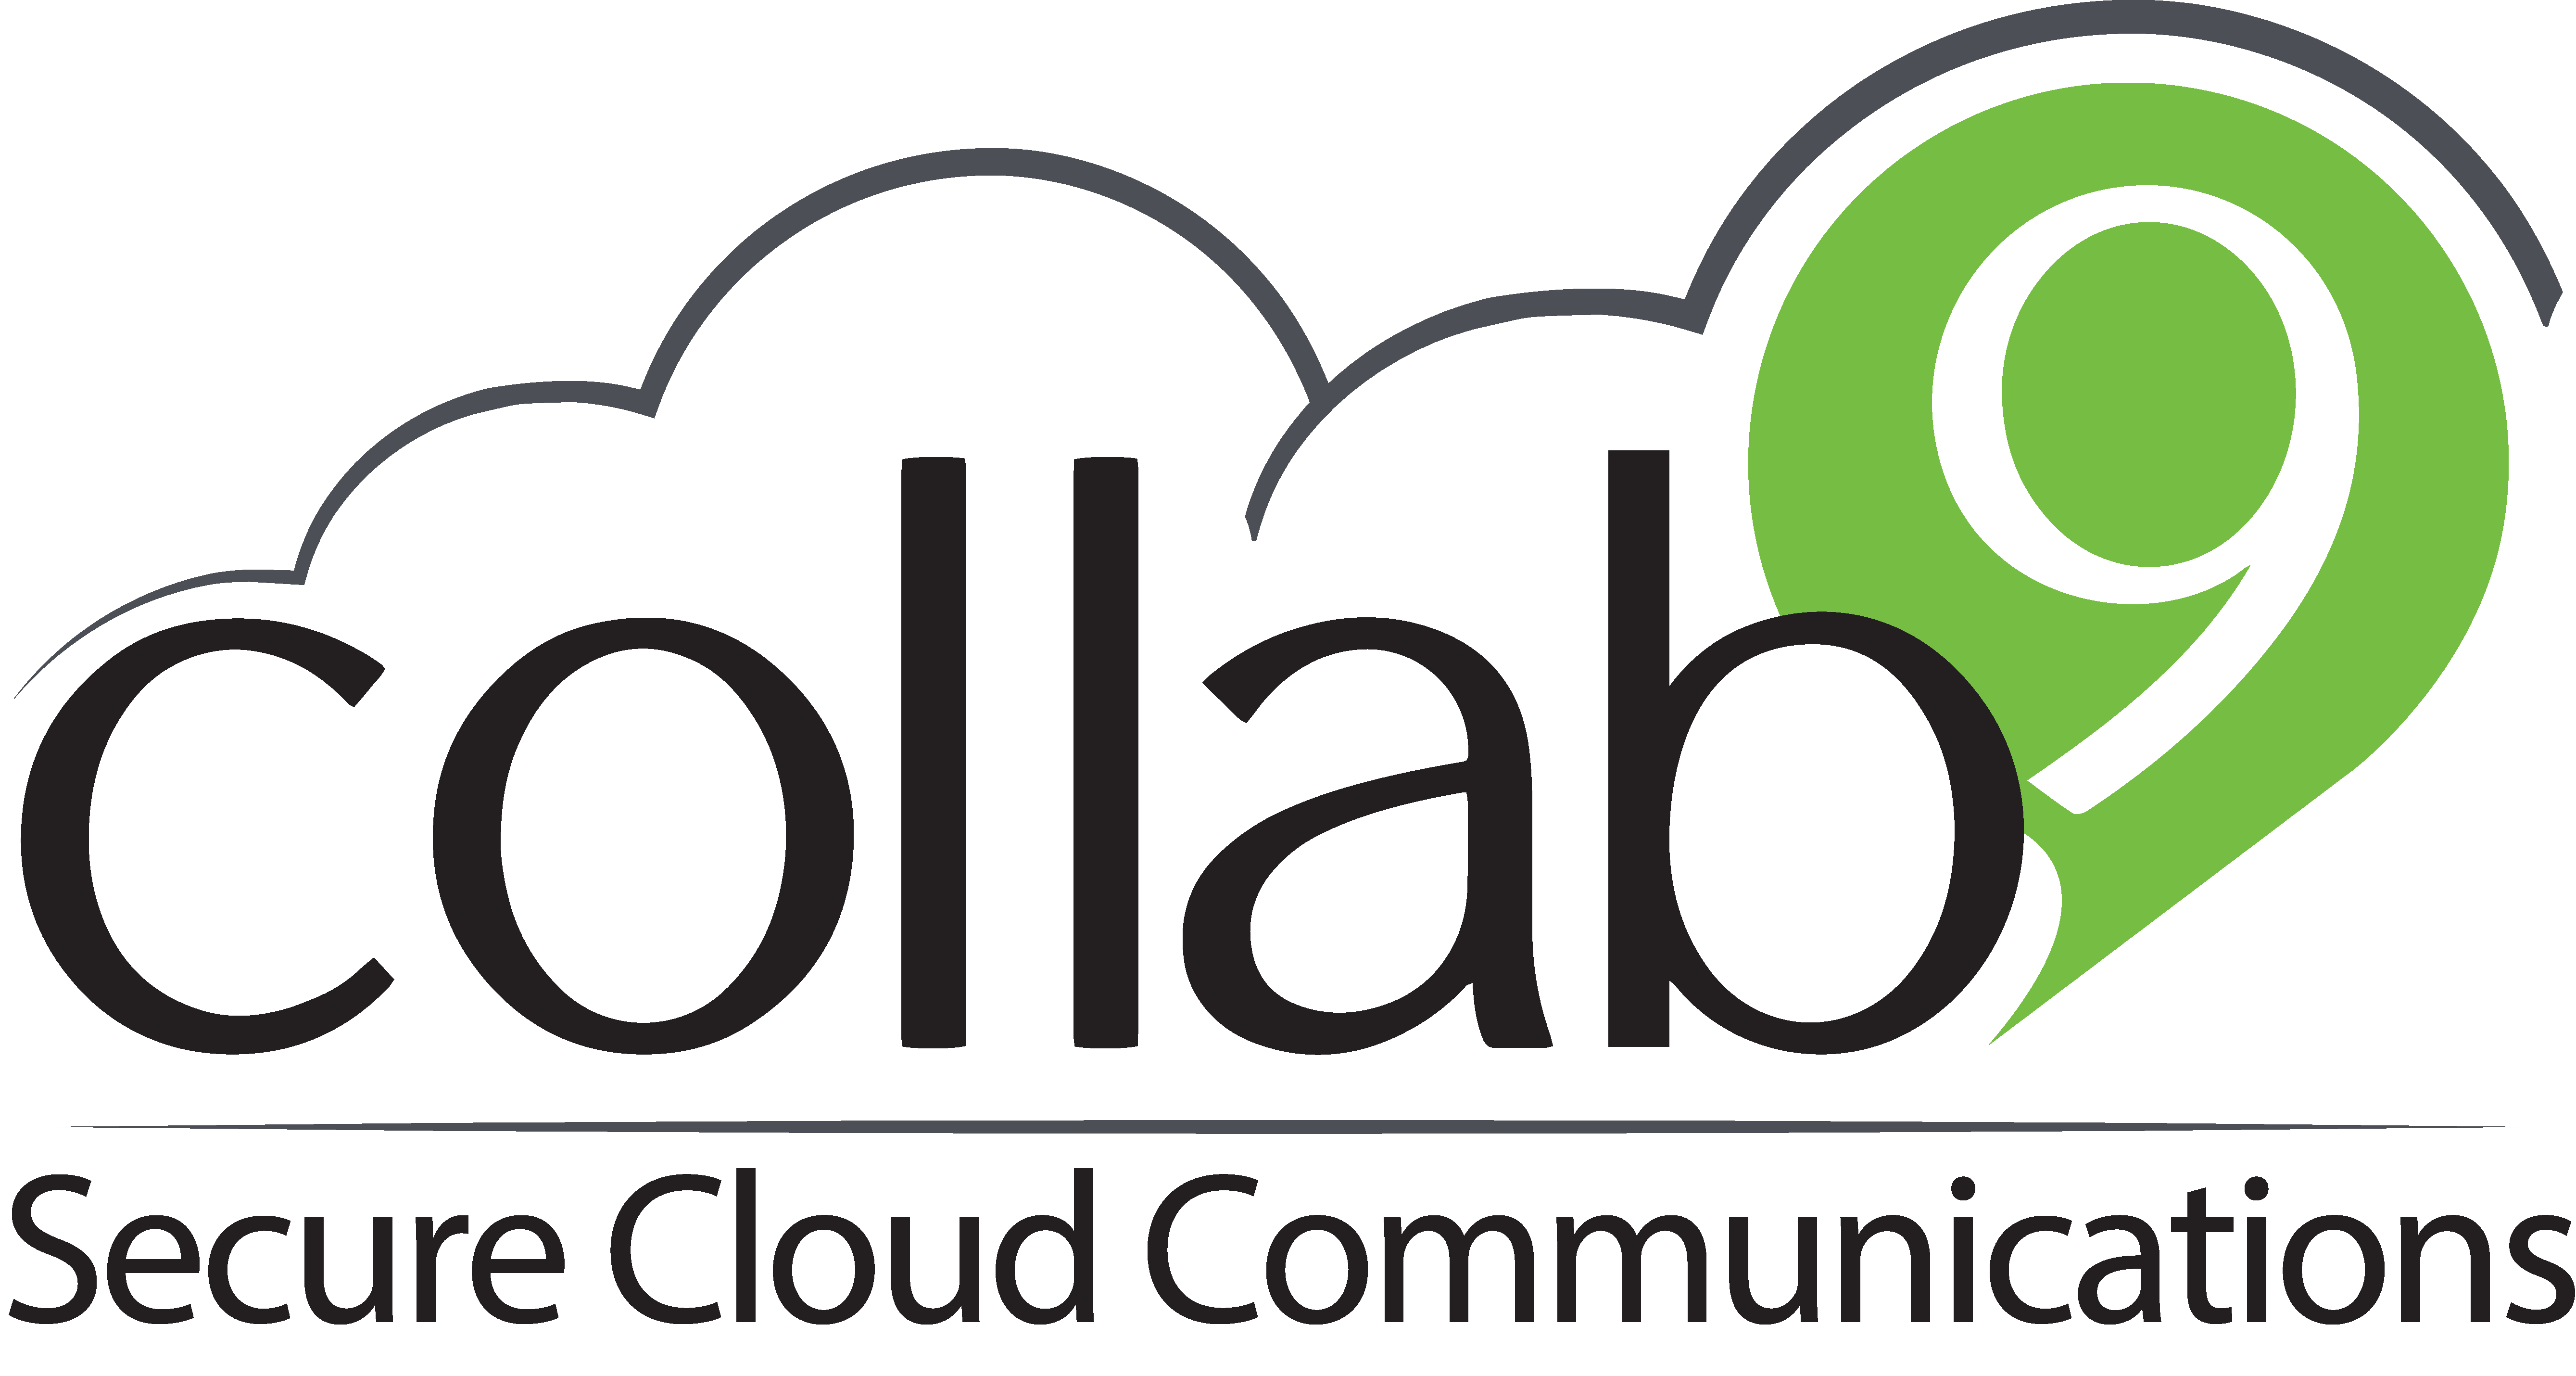 Collab9-Logo--Secure-Cloud-Communications[1].png